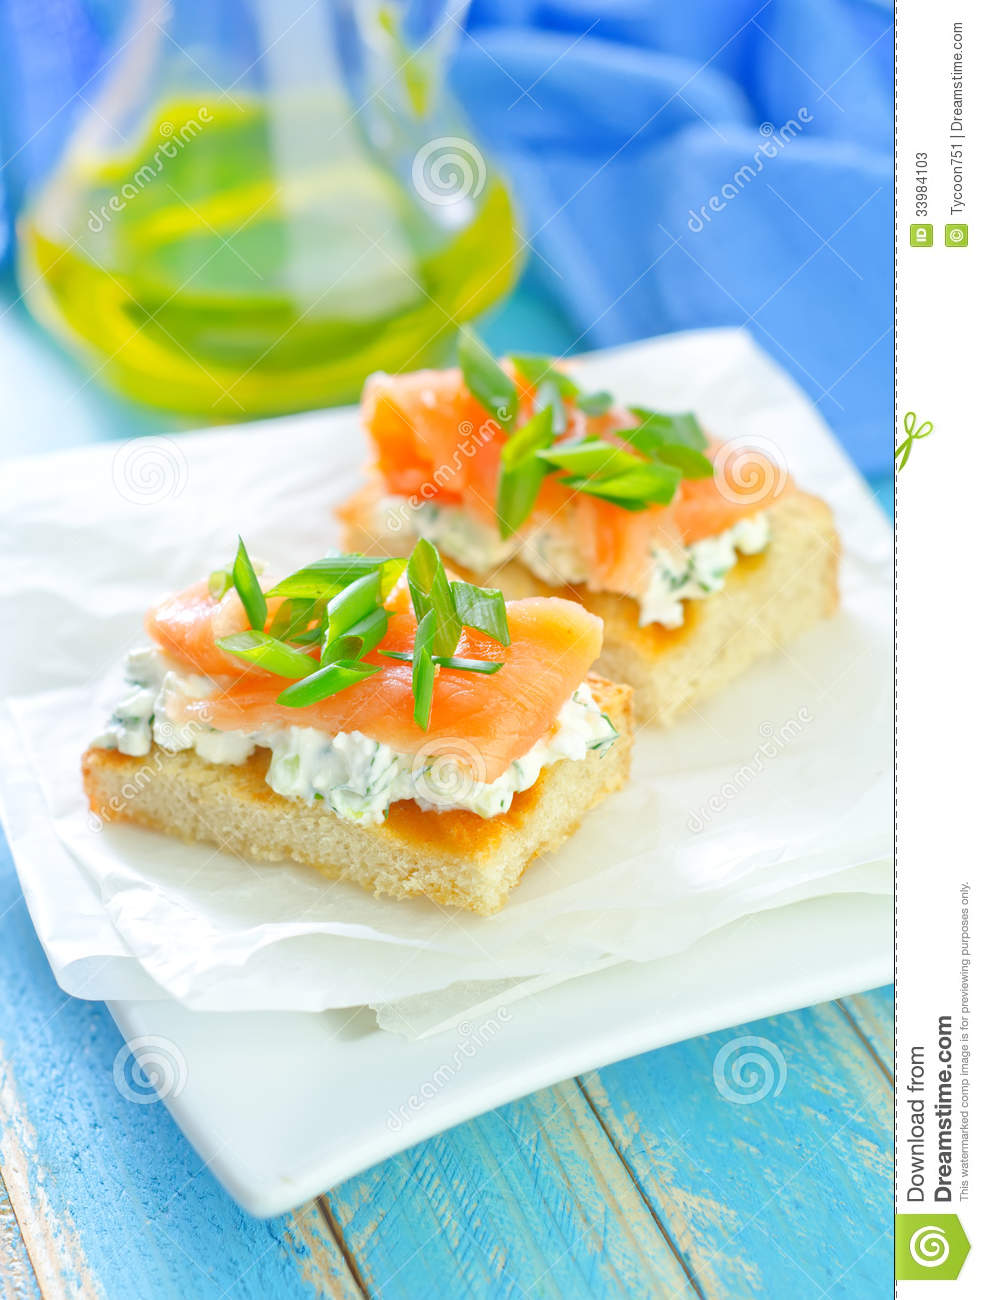 Canape stock photos image 33984103 for Canape with cheese